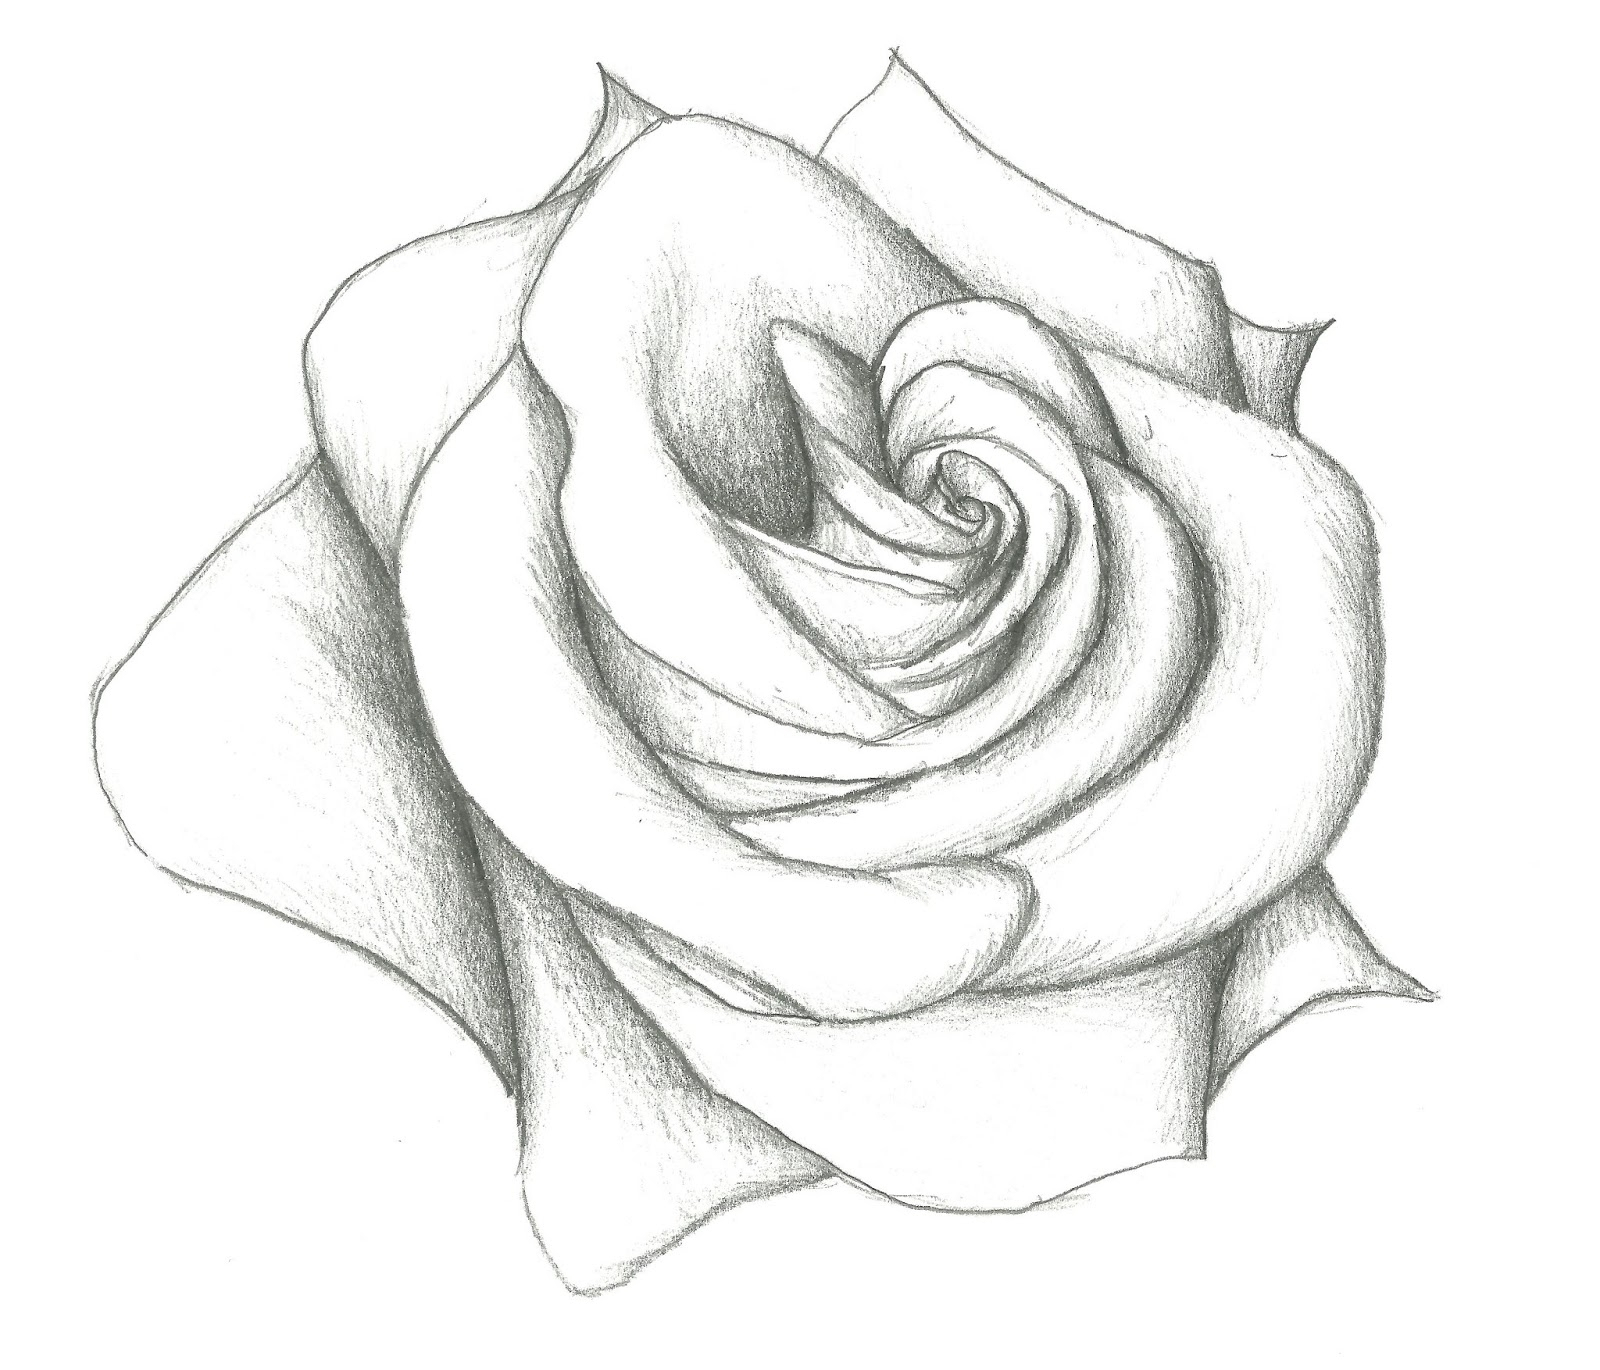 1600x1370 Pencil Sketches Of Hearts Roses Pencil Drawings Of Hearts